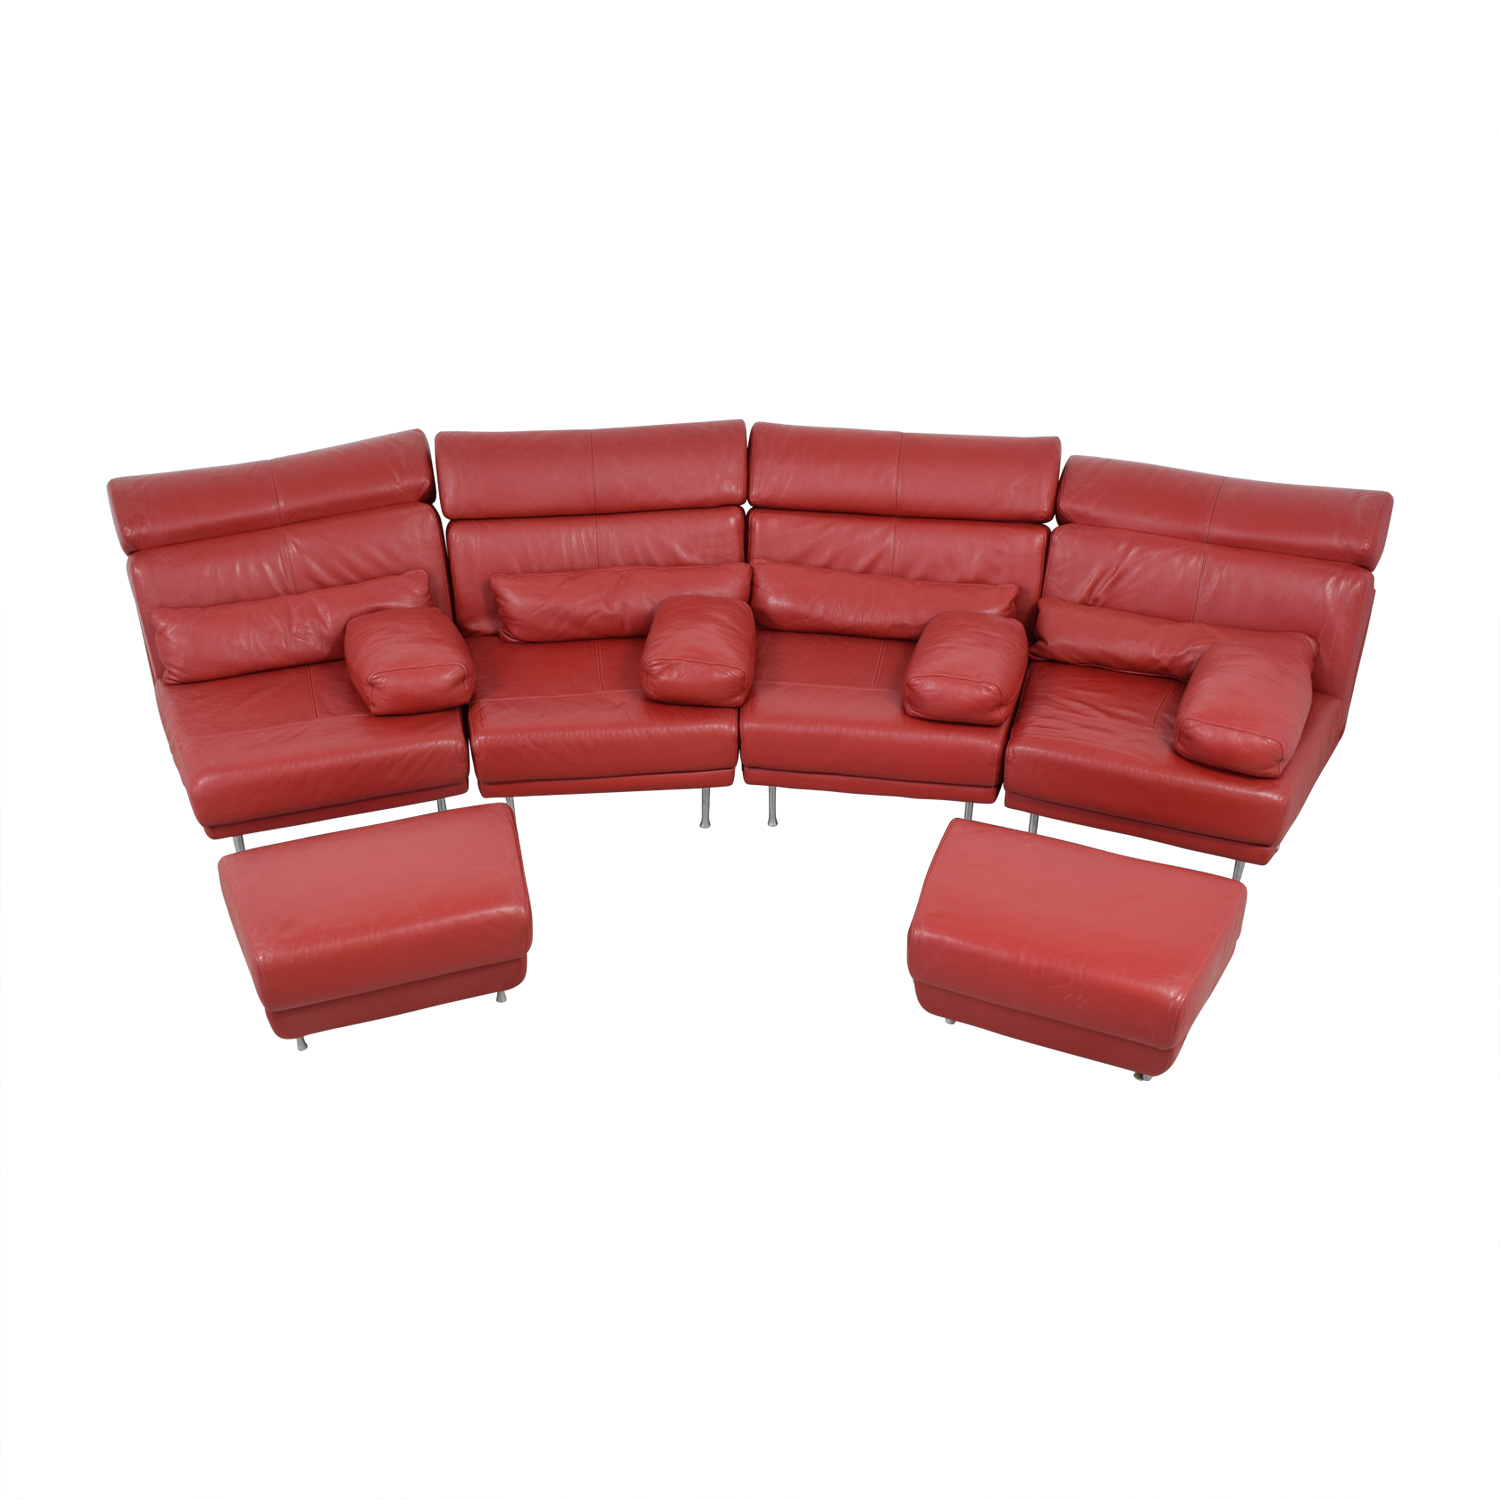 Natuzzi Natuzzi Red Leather Sectional with Two Ottomans discount